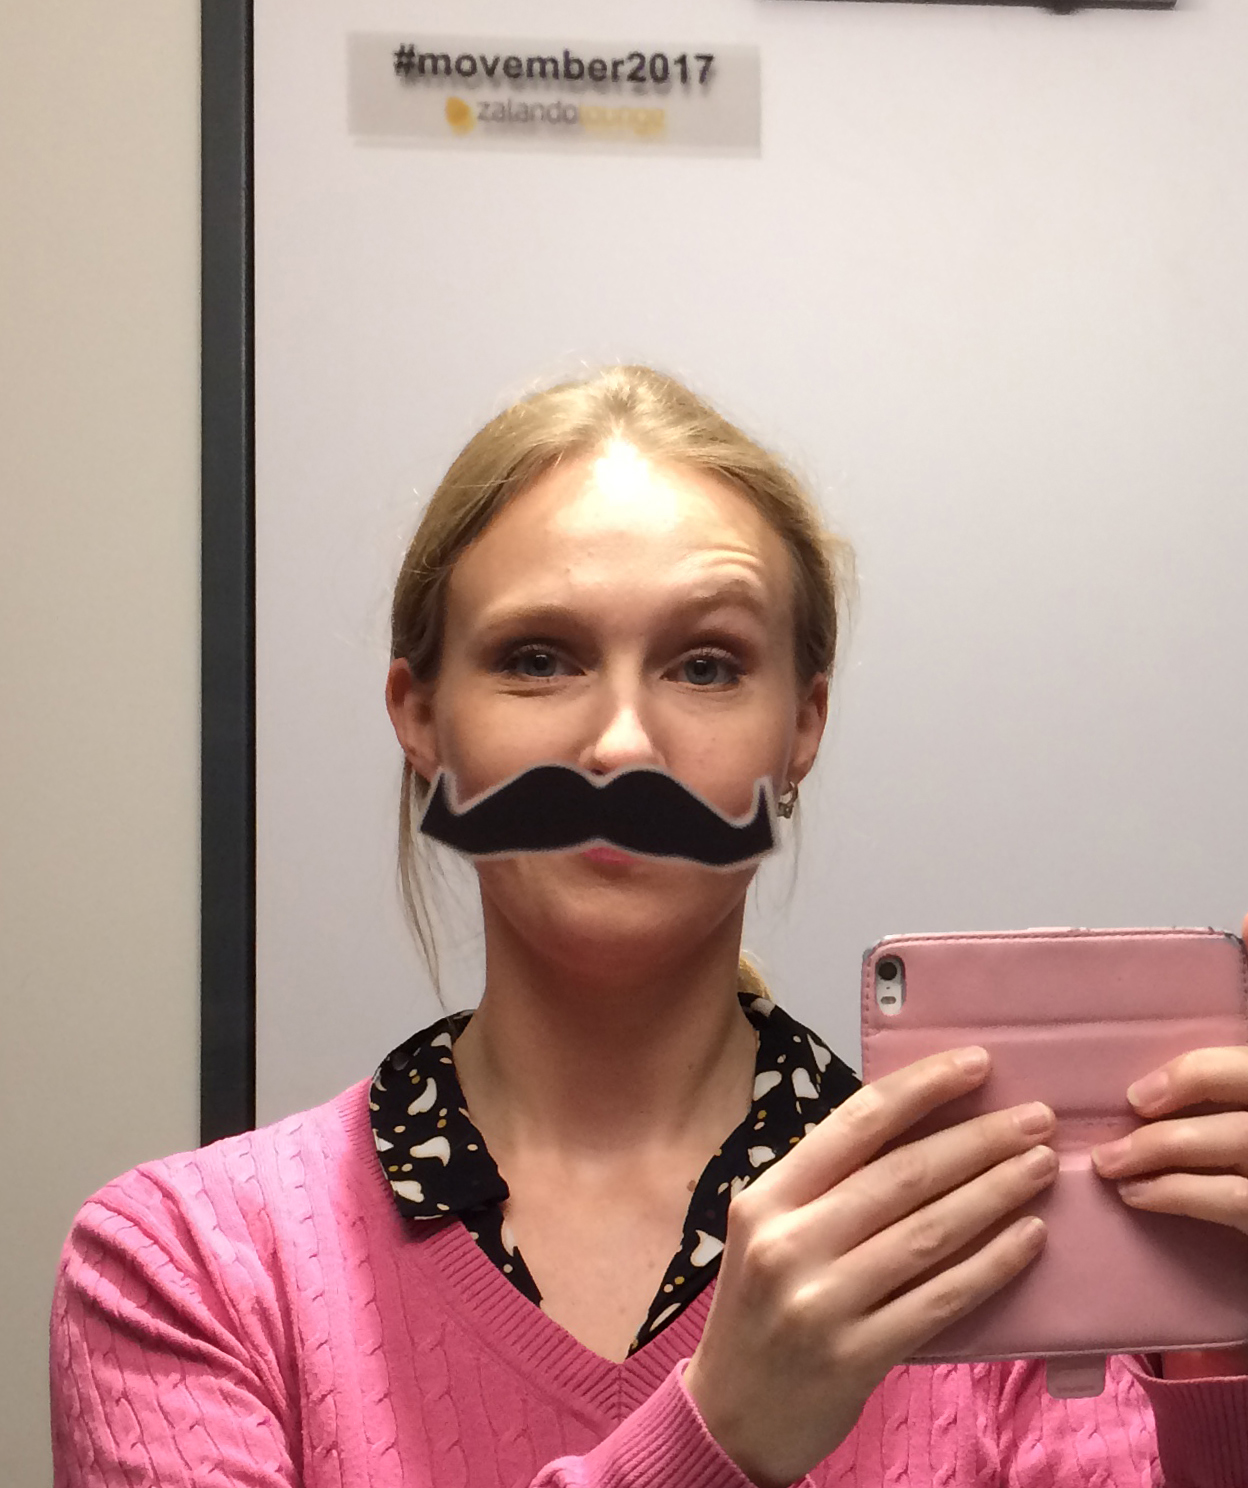 Zalando SE_Newsroom_Stories_Movember Mirror